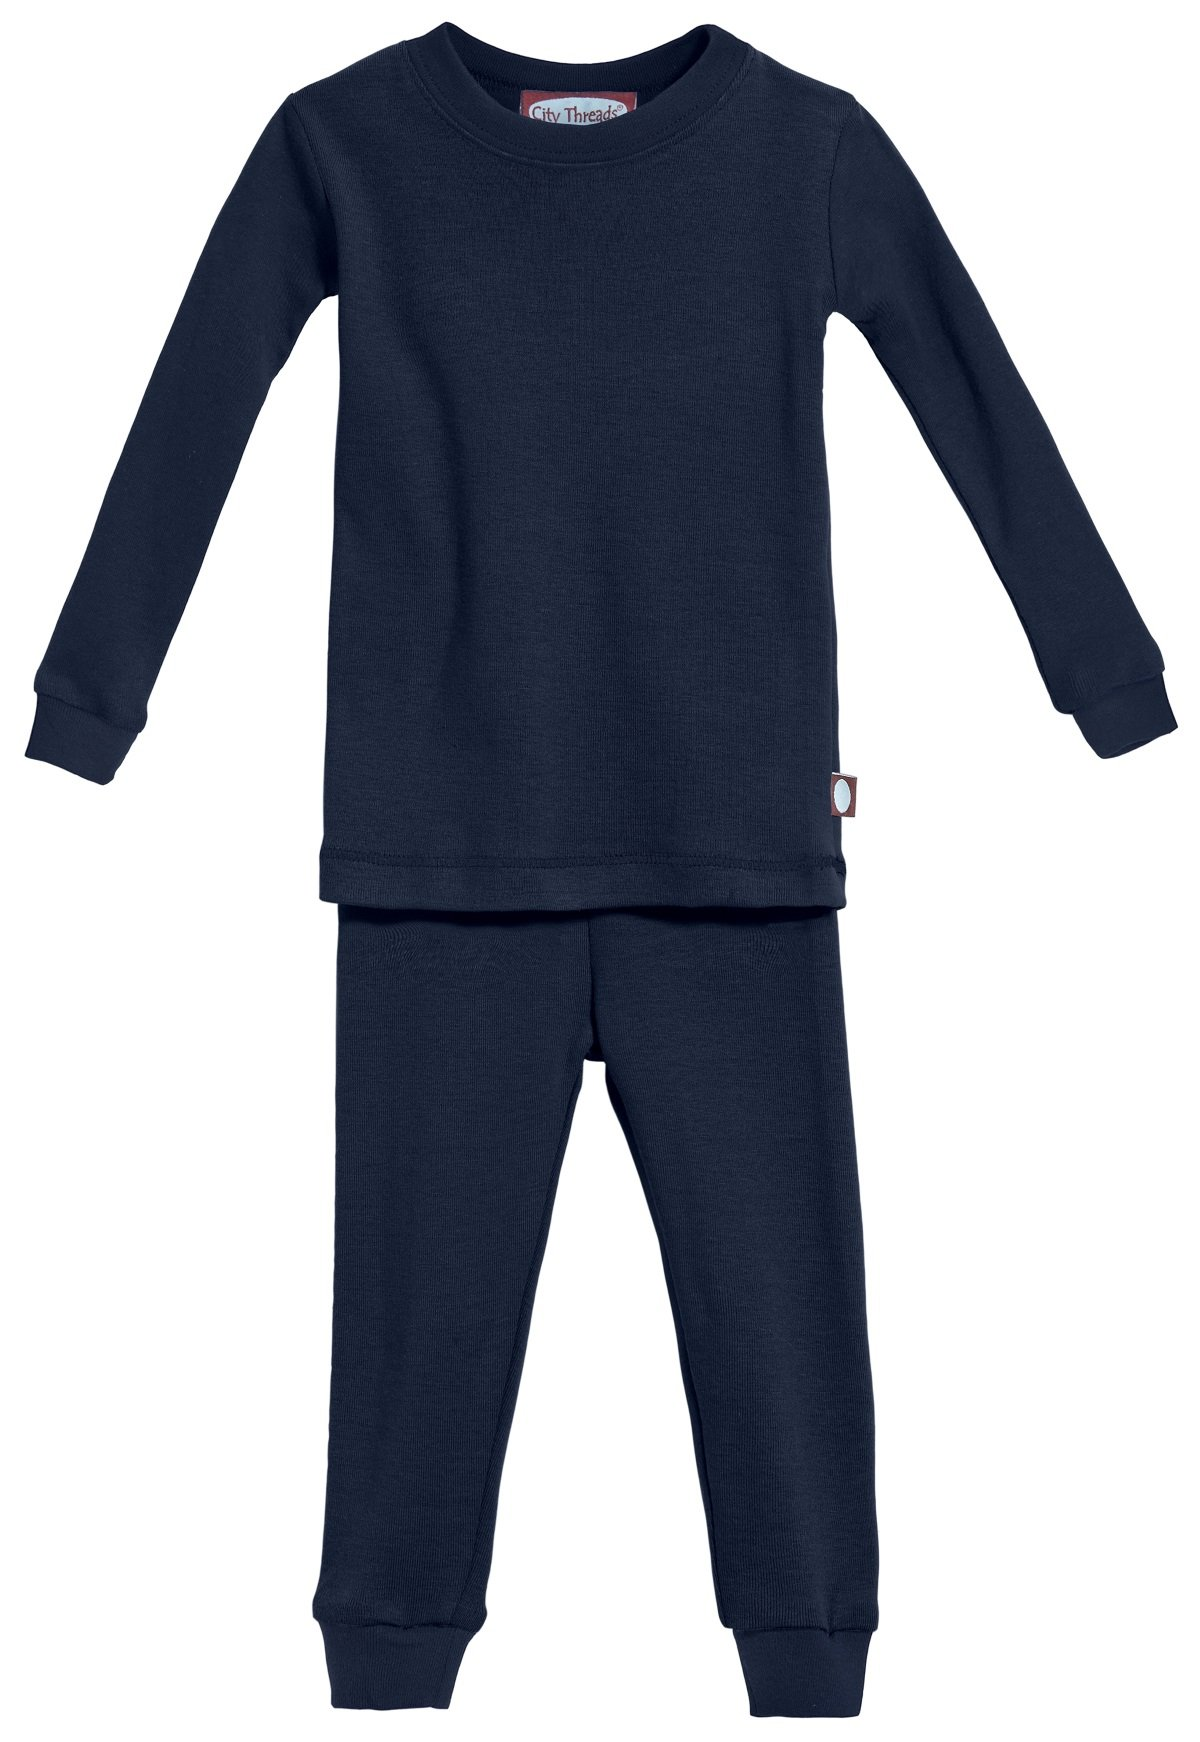 City Threads Certified Organic Thermal Pajama Set, Little Boys and Girls for Sensitive Skin/SPD/Sensory Friendly, Navy, 4